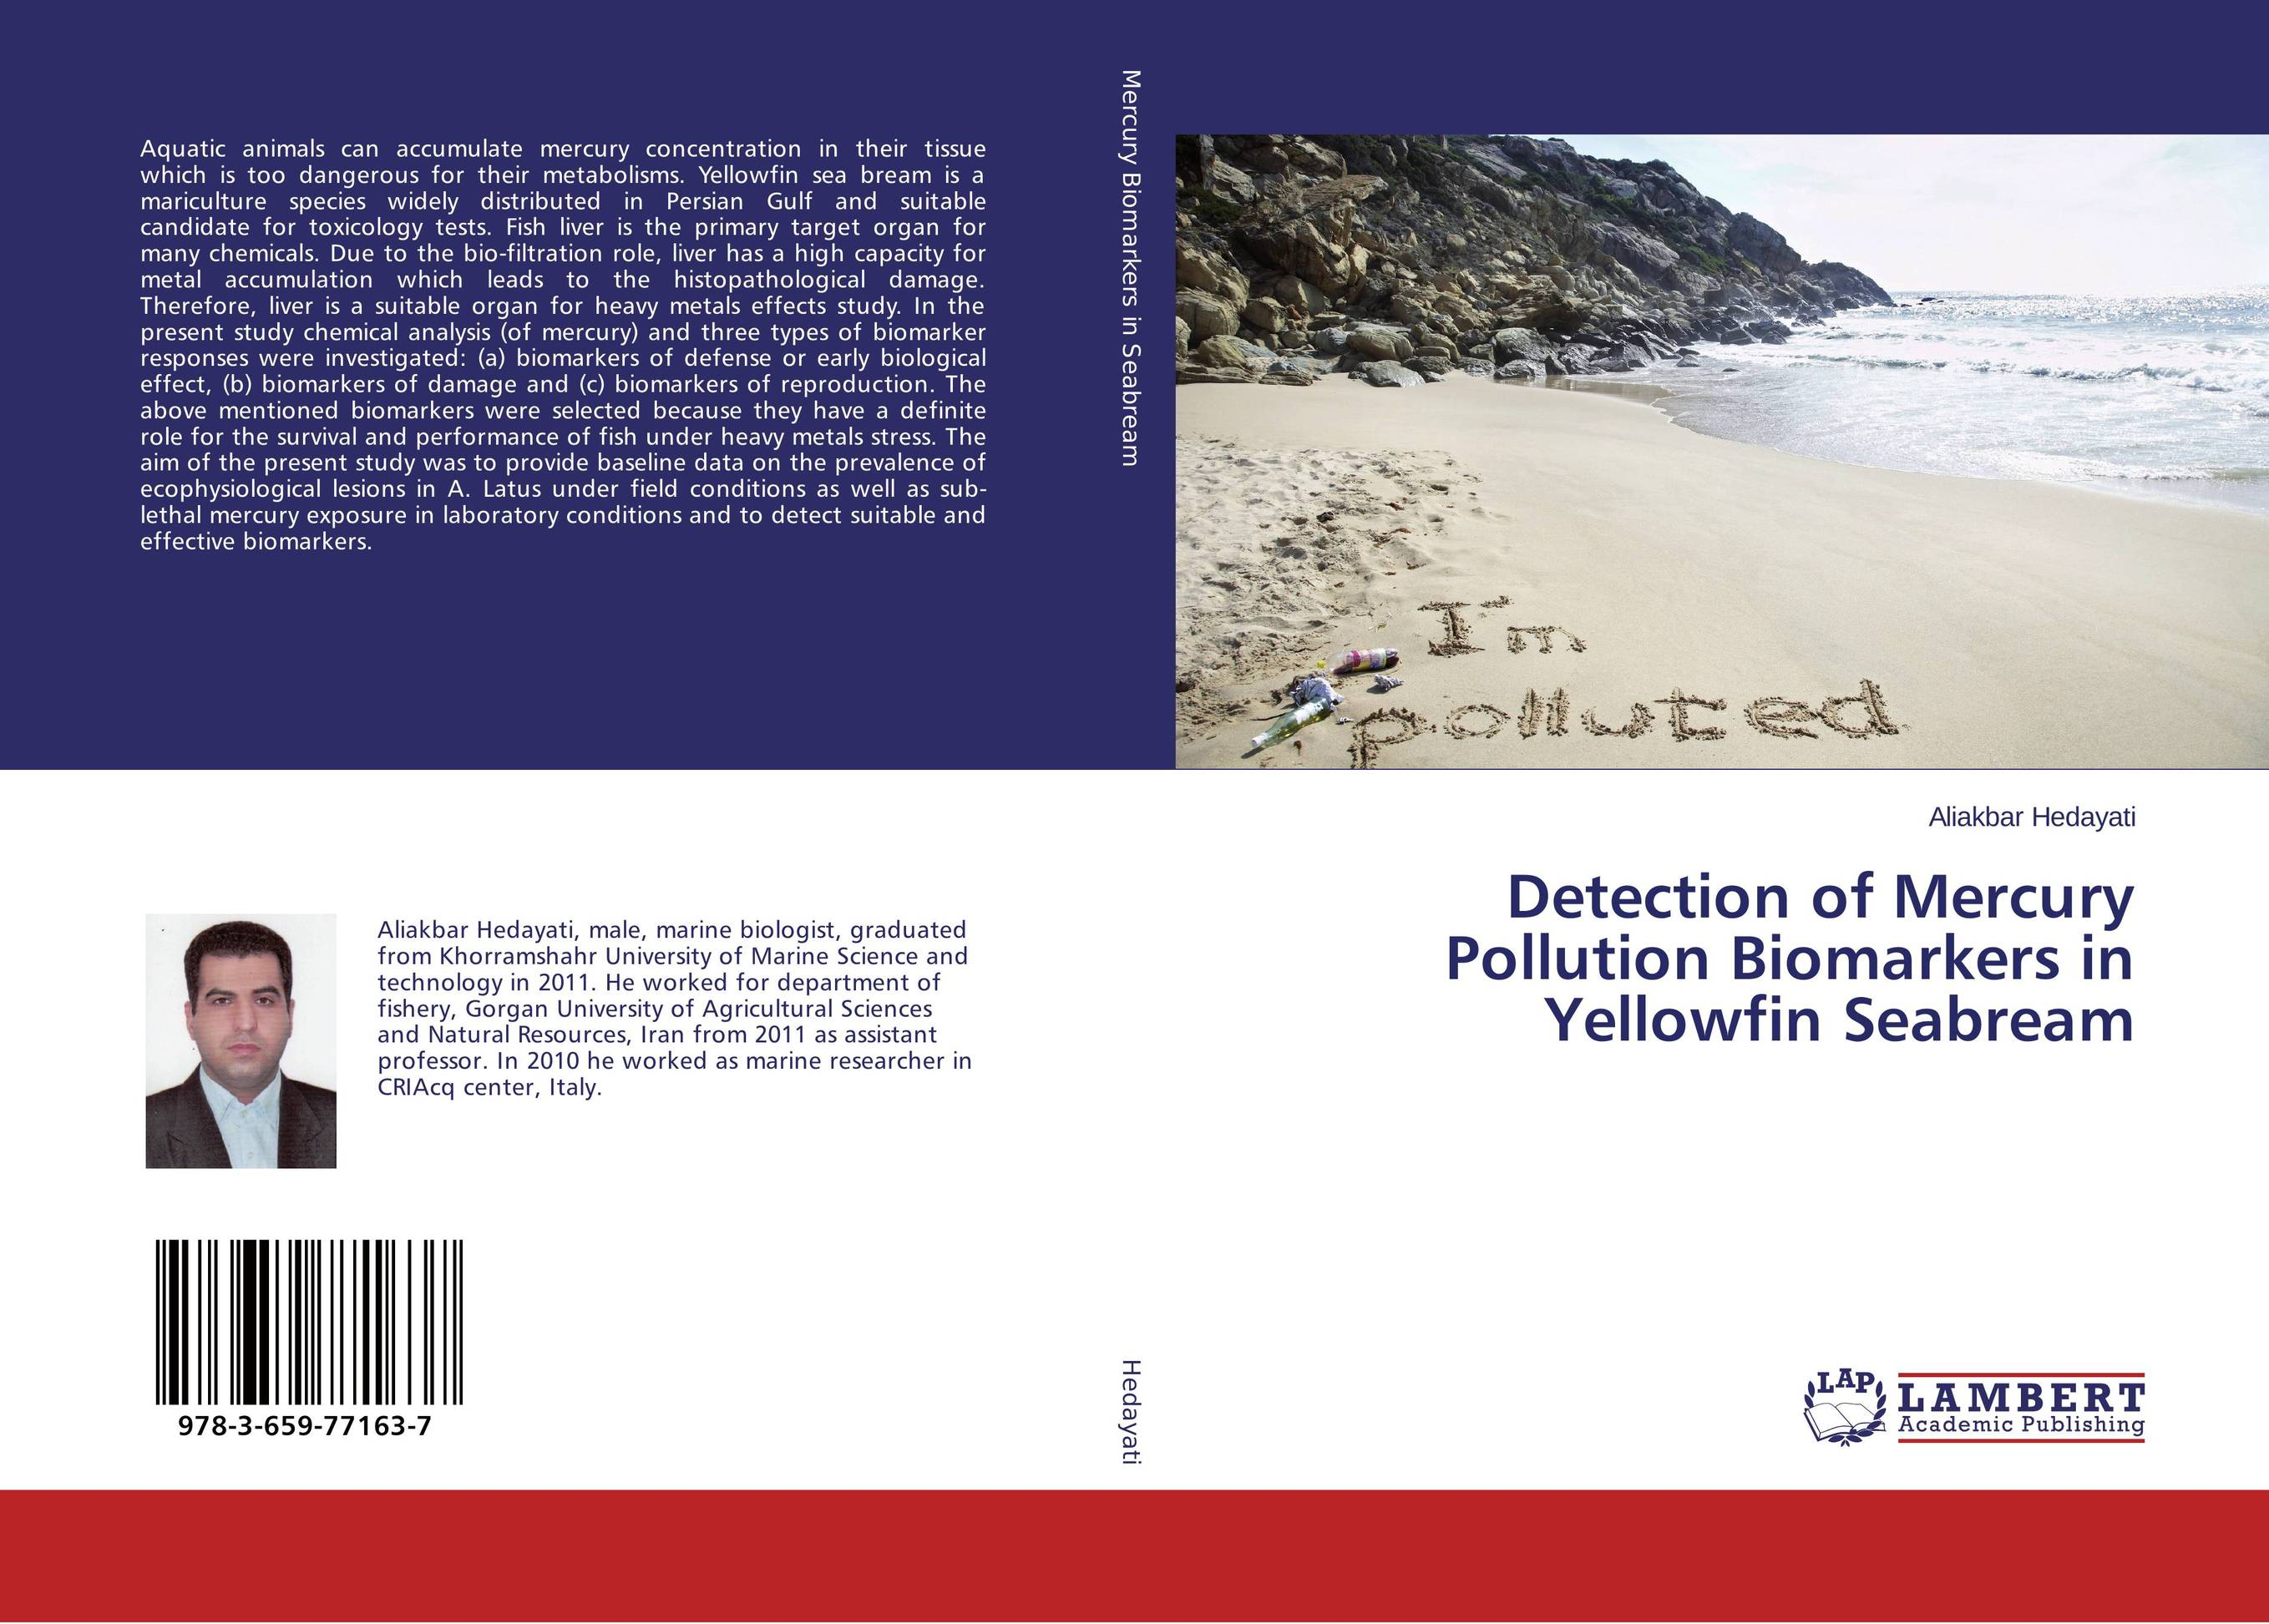 Detection of Mercury Pollution Biomarkers in Yellowfin Seabream environmental biomarkers